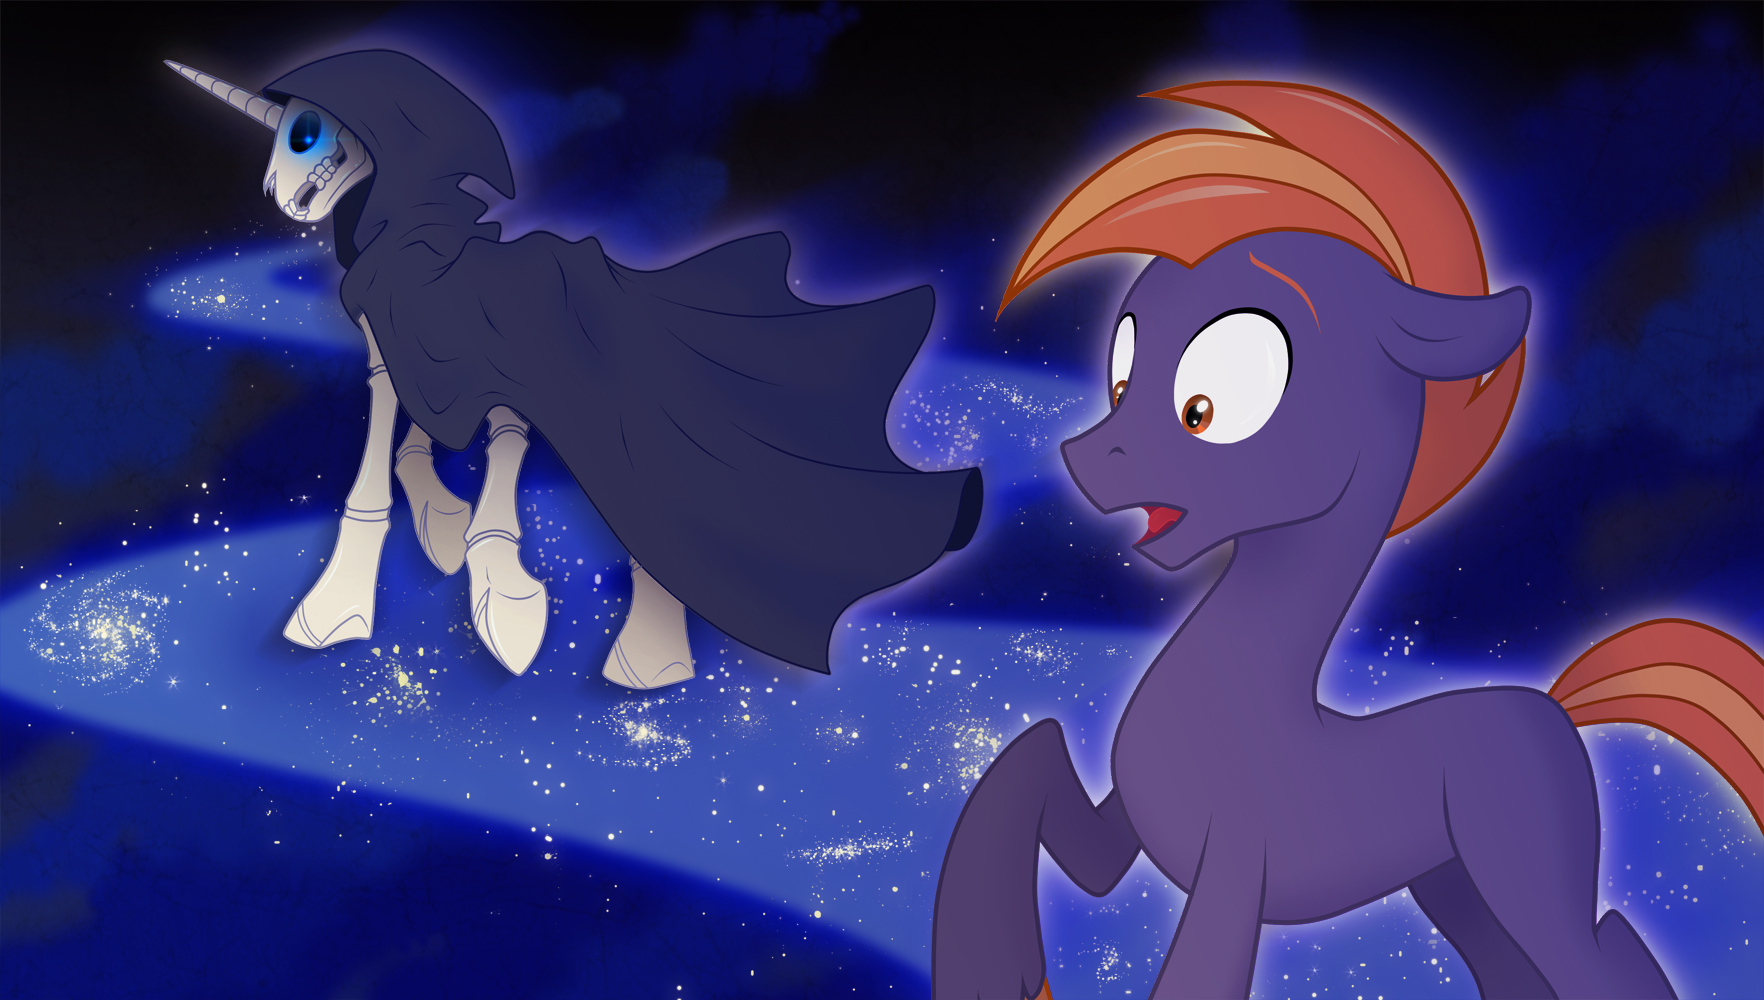 Next gen twilight line by pencillspark on deviantart - Next Gen Twilight Line By Pencillspark On Deviantart 59